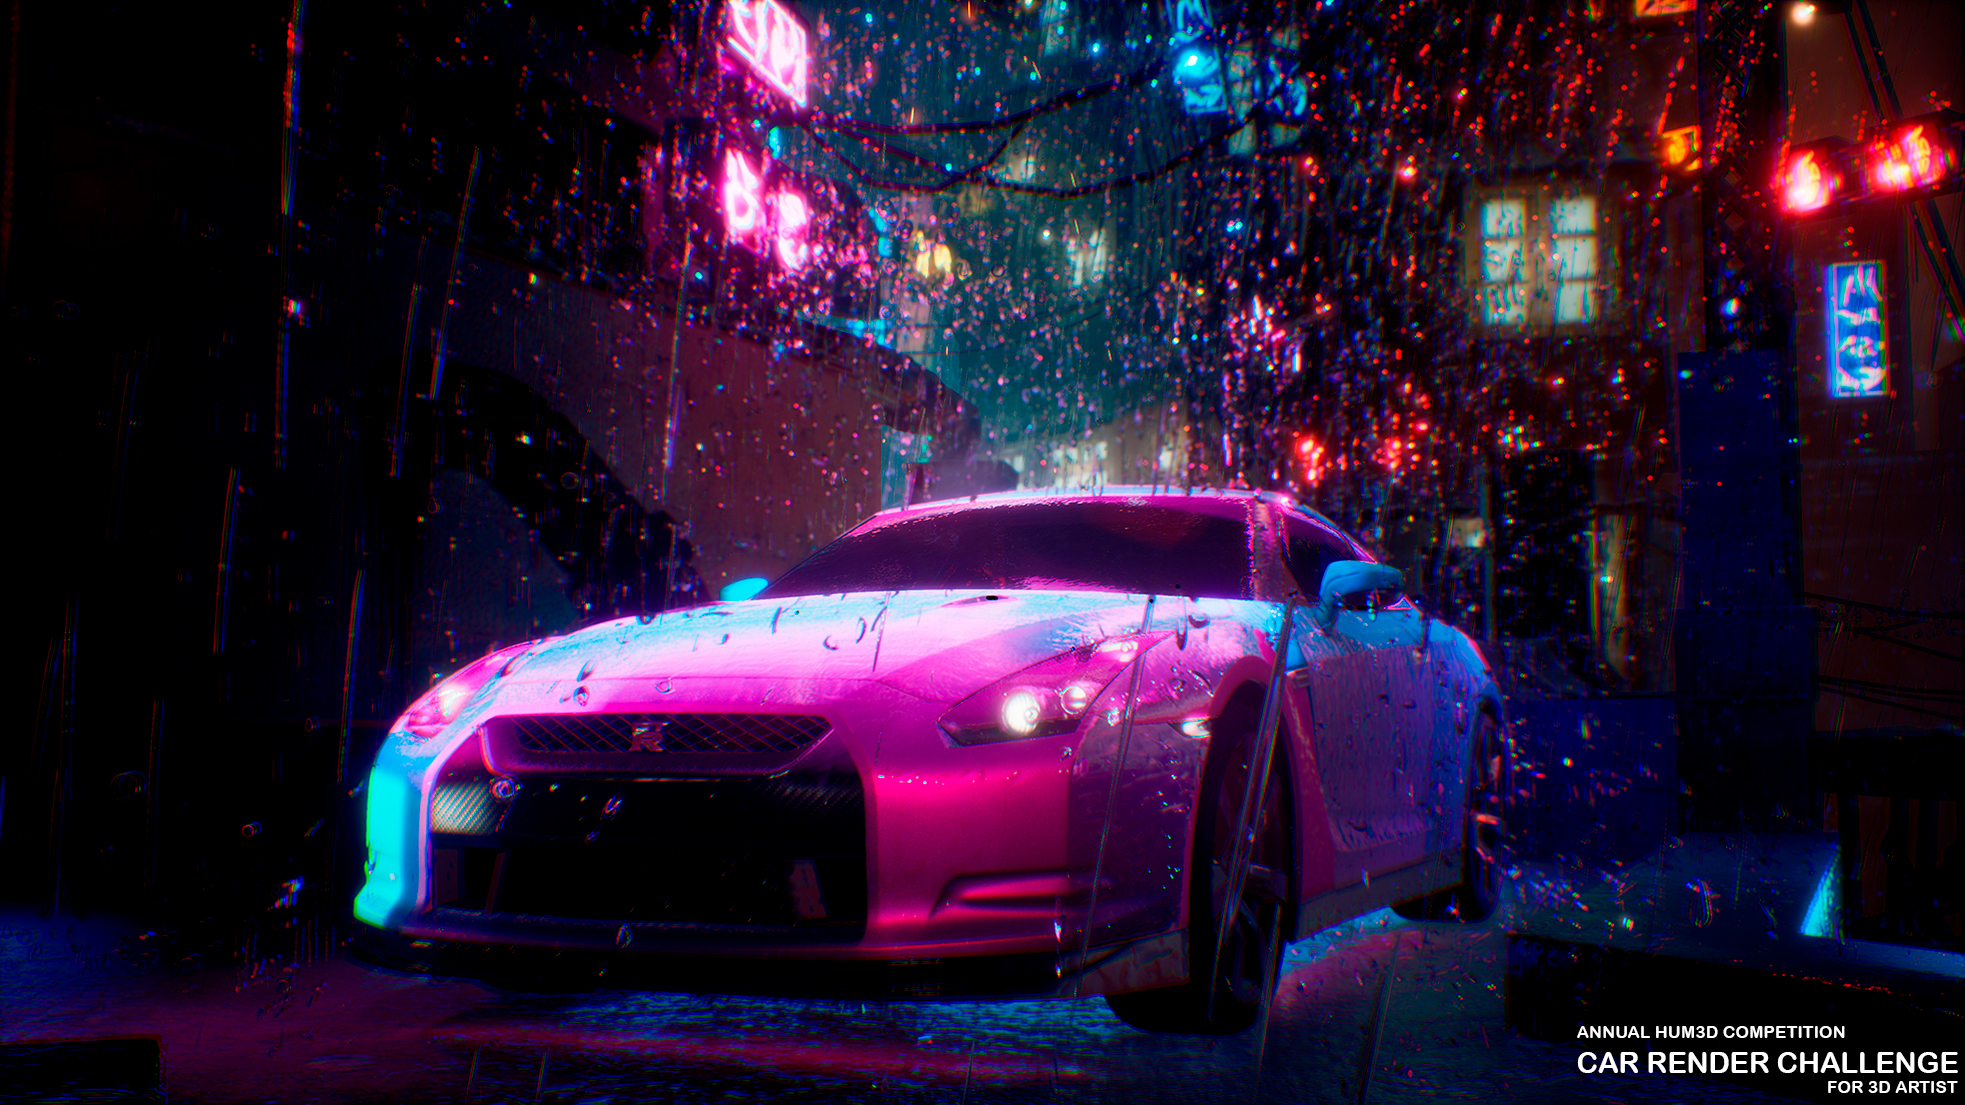 Nissan GTR R35 in the rain in the style of Cyberpunk 3d art